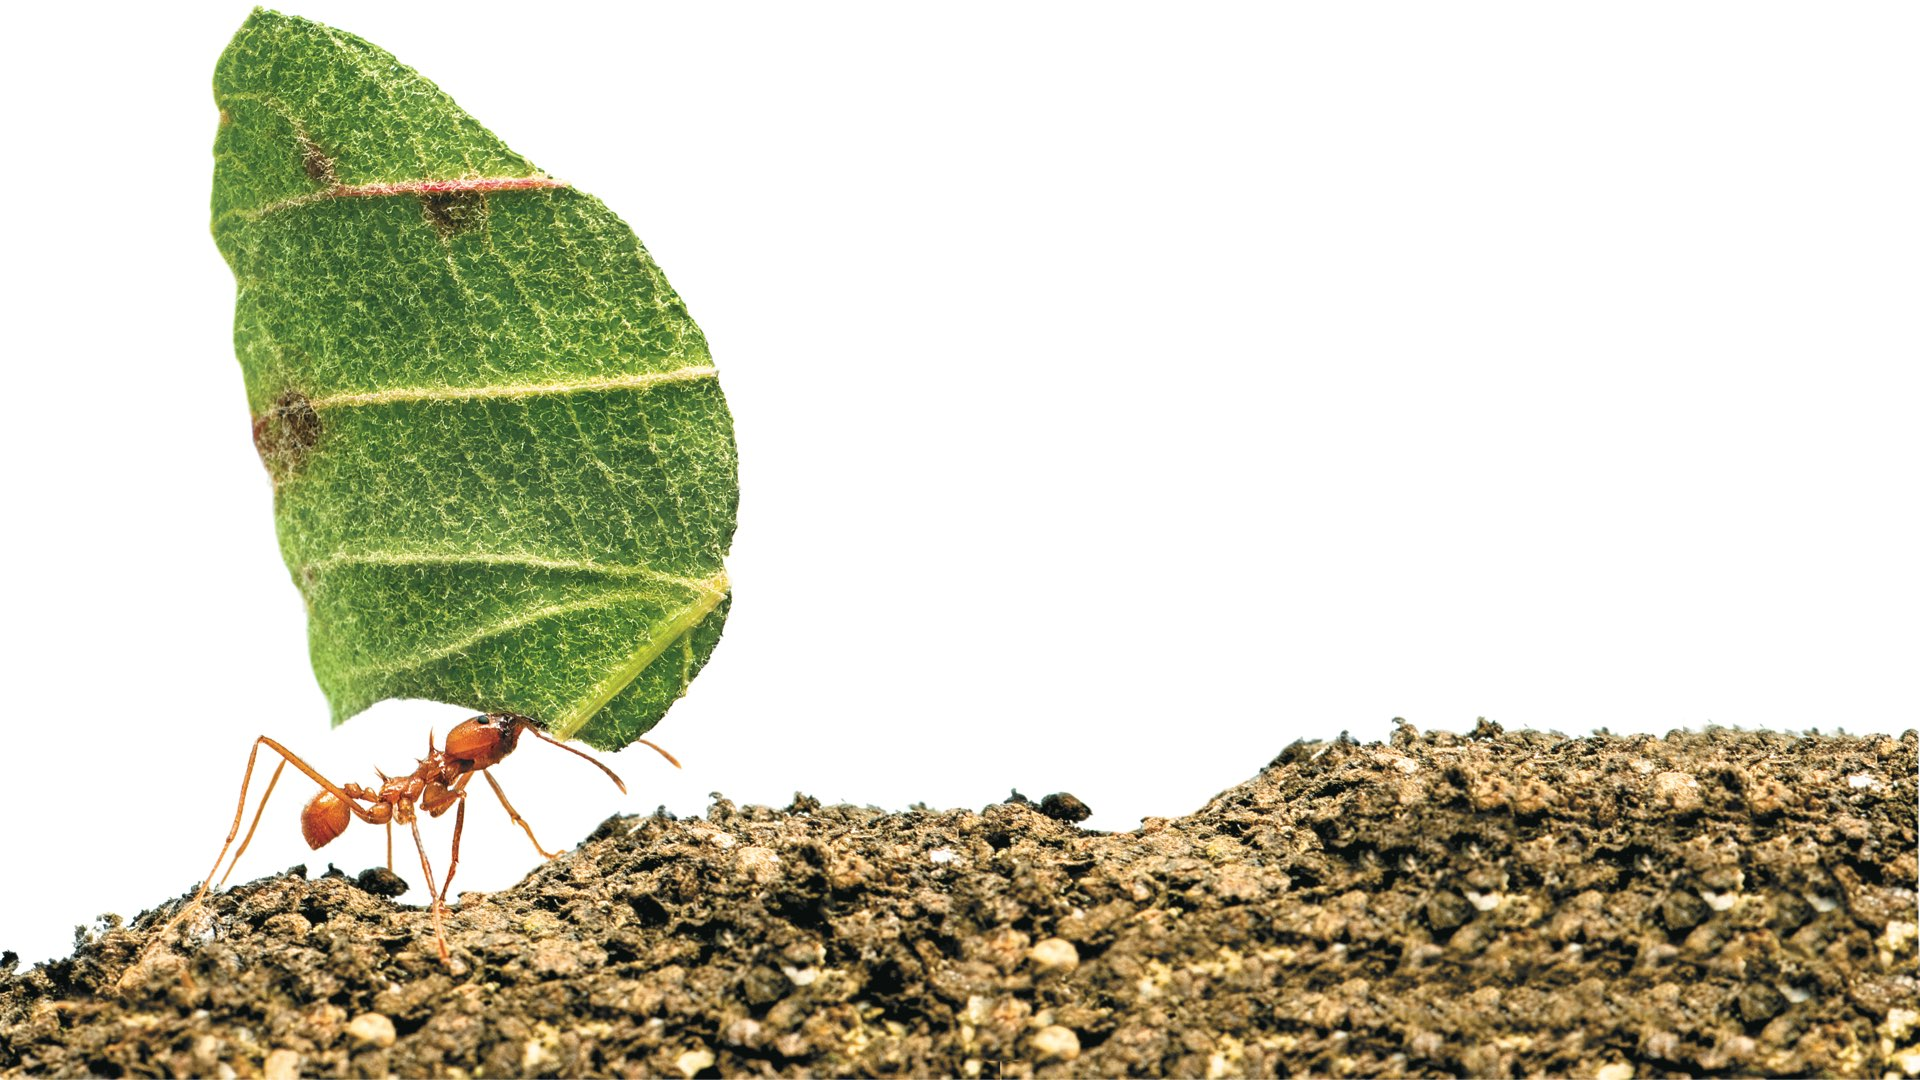 Close-up of an ant walking on gravel carrying a leaf several times its size